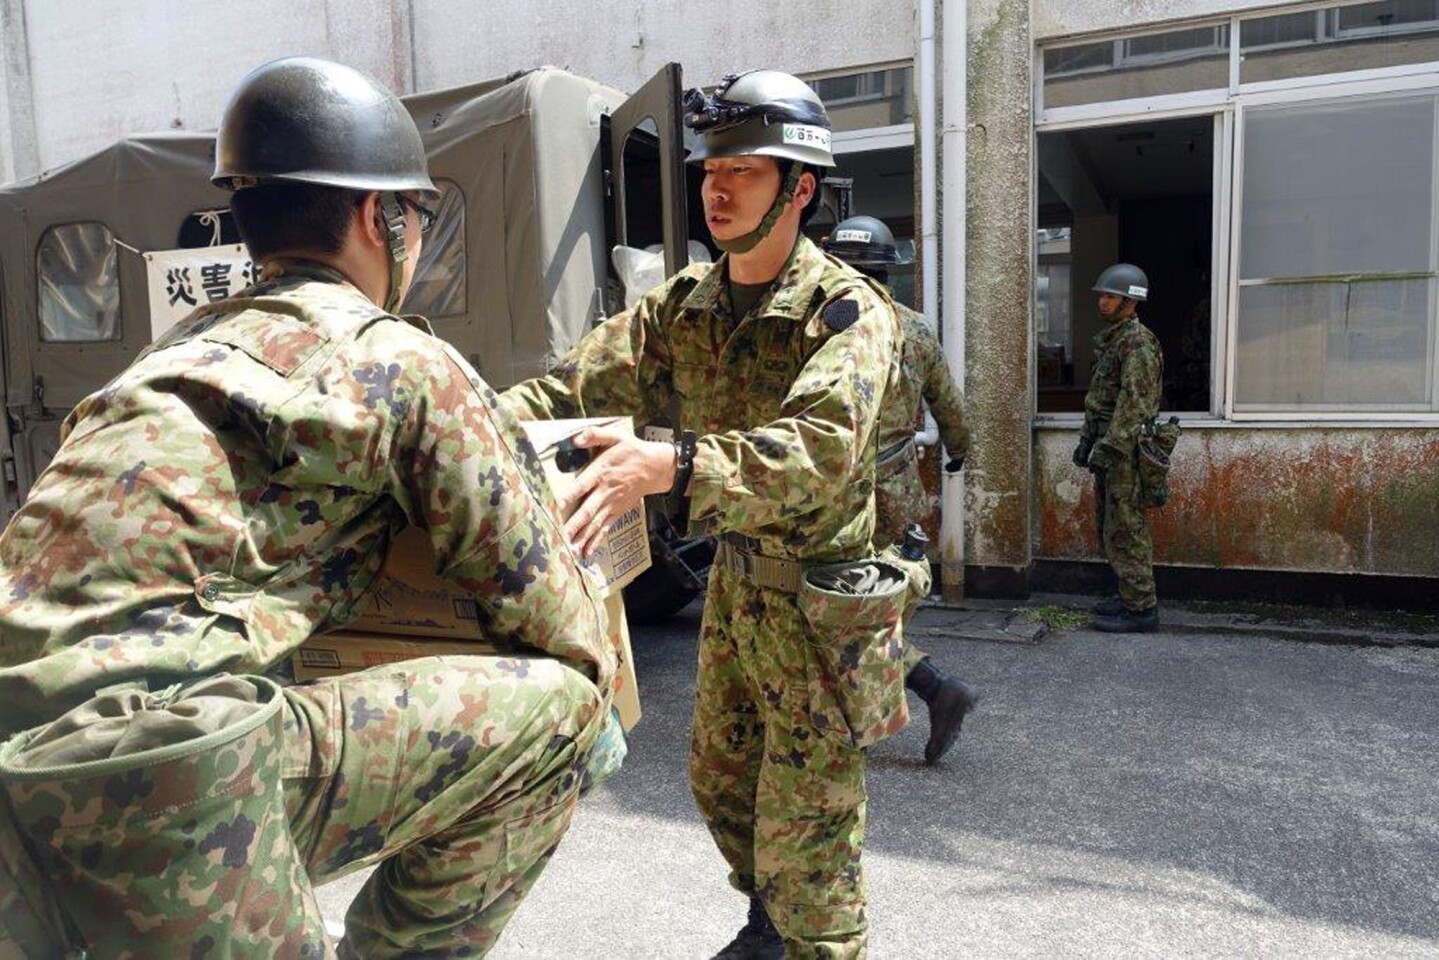 Troops bring in supplies to set up a new shelter in Minamiaso, Kumamoto prefecture, Japan Tuesday, April 19, 2016. Evacuees at a gymnasium were moving to another shelter Tuesday, a nearby former elementary school, because some expressed fears after the strong aftershock, because the gym stands on the hill.